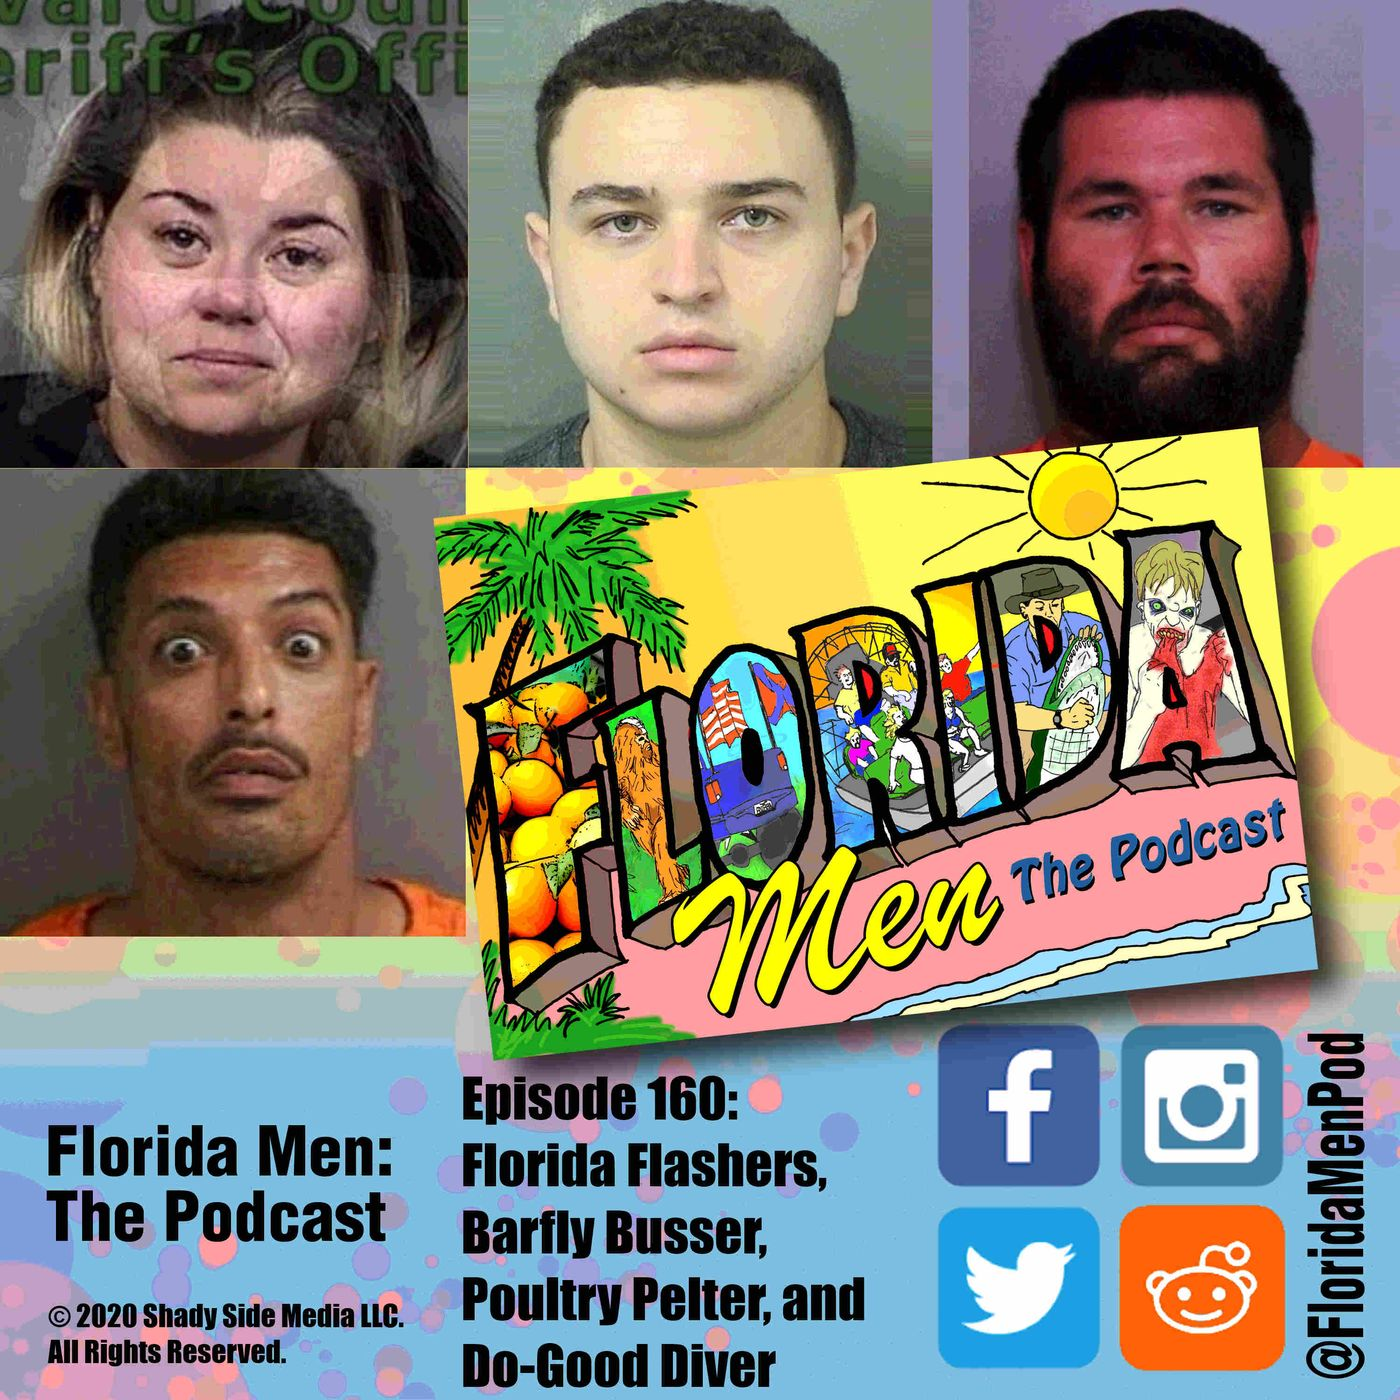 160 - Florida Flashers, Barfly Bussers, Poultry Pelter, and Do-Good Diver